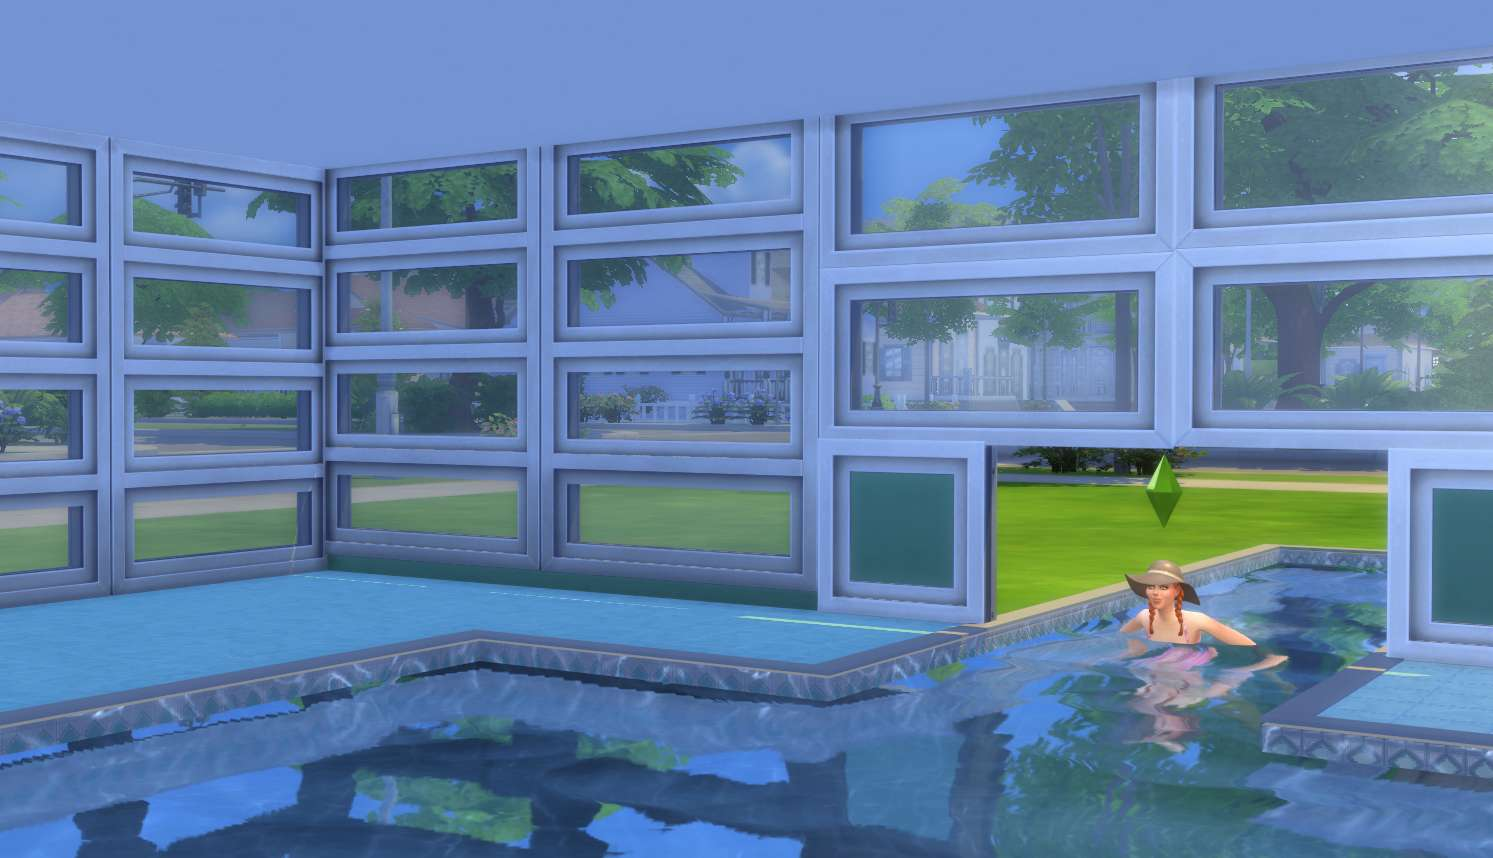 The Sims 4 Building: Landscaping, Pools (Indoor/Outdoor)